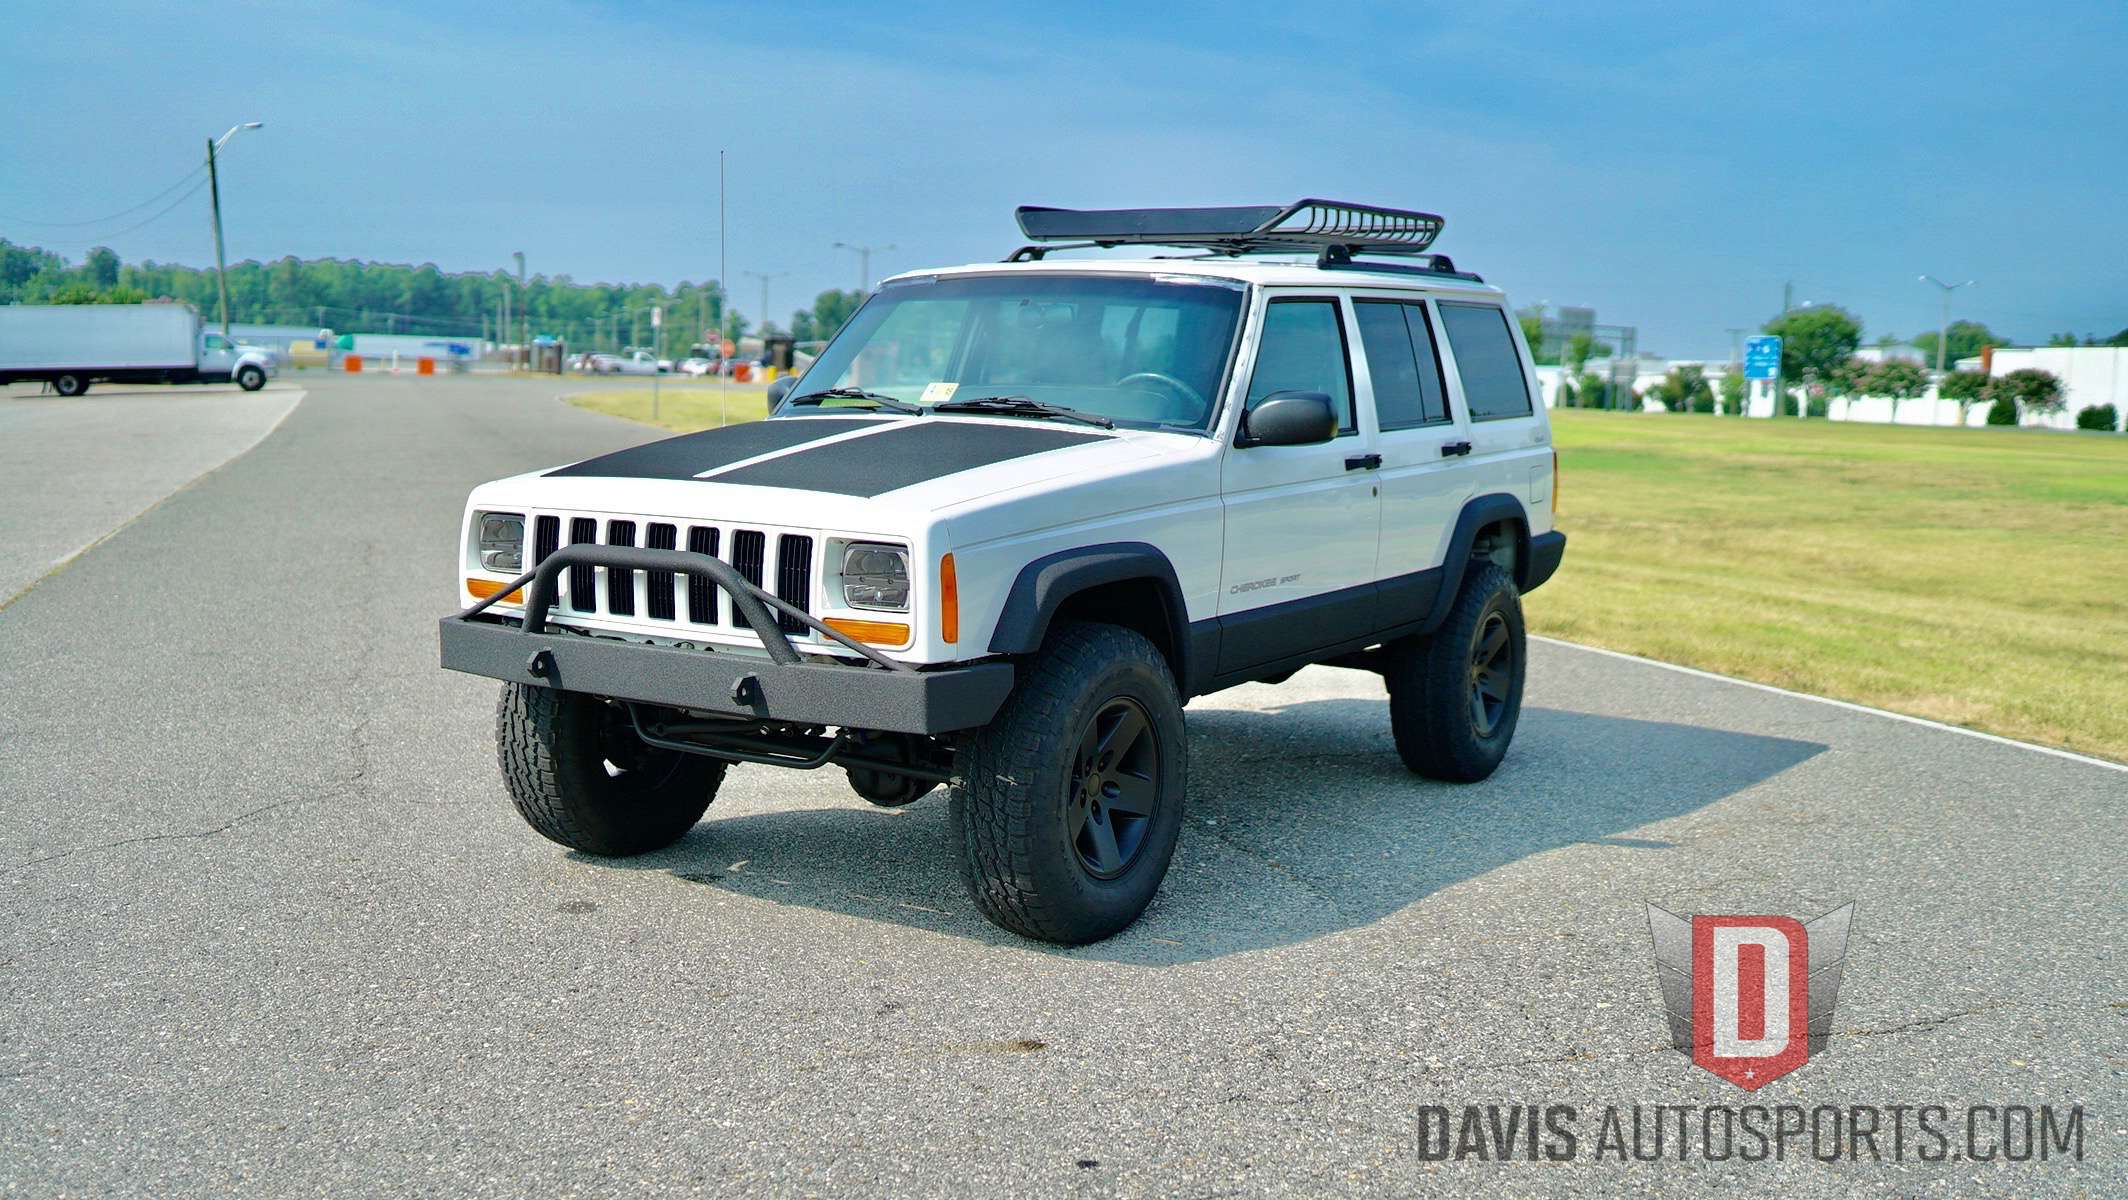 Built Cherokee Old Davis Autosports 2000 Jeep Grand Laredo Powertrain Wiring Harness Our Cherokees Are All Over The Us And Even Overseas We Will Continue Lead Nation In Bringing You Nicest Cleanest Xjs Find